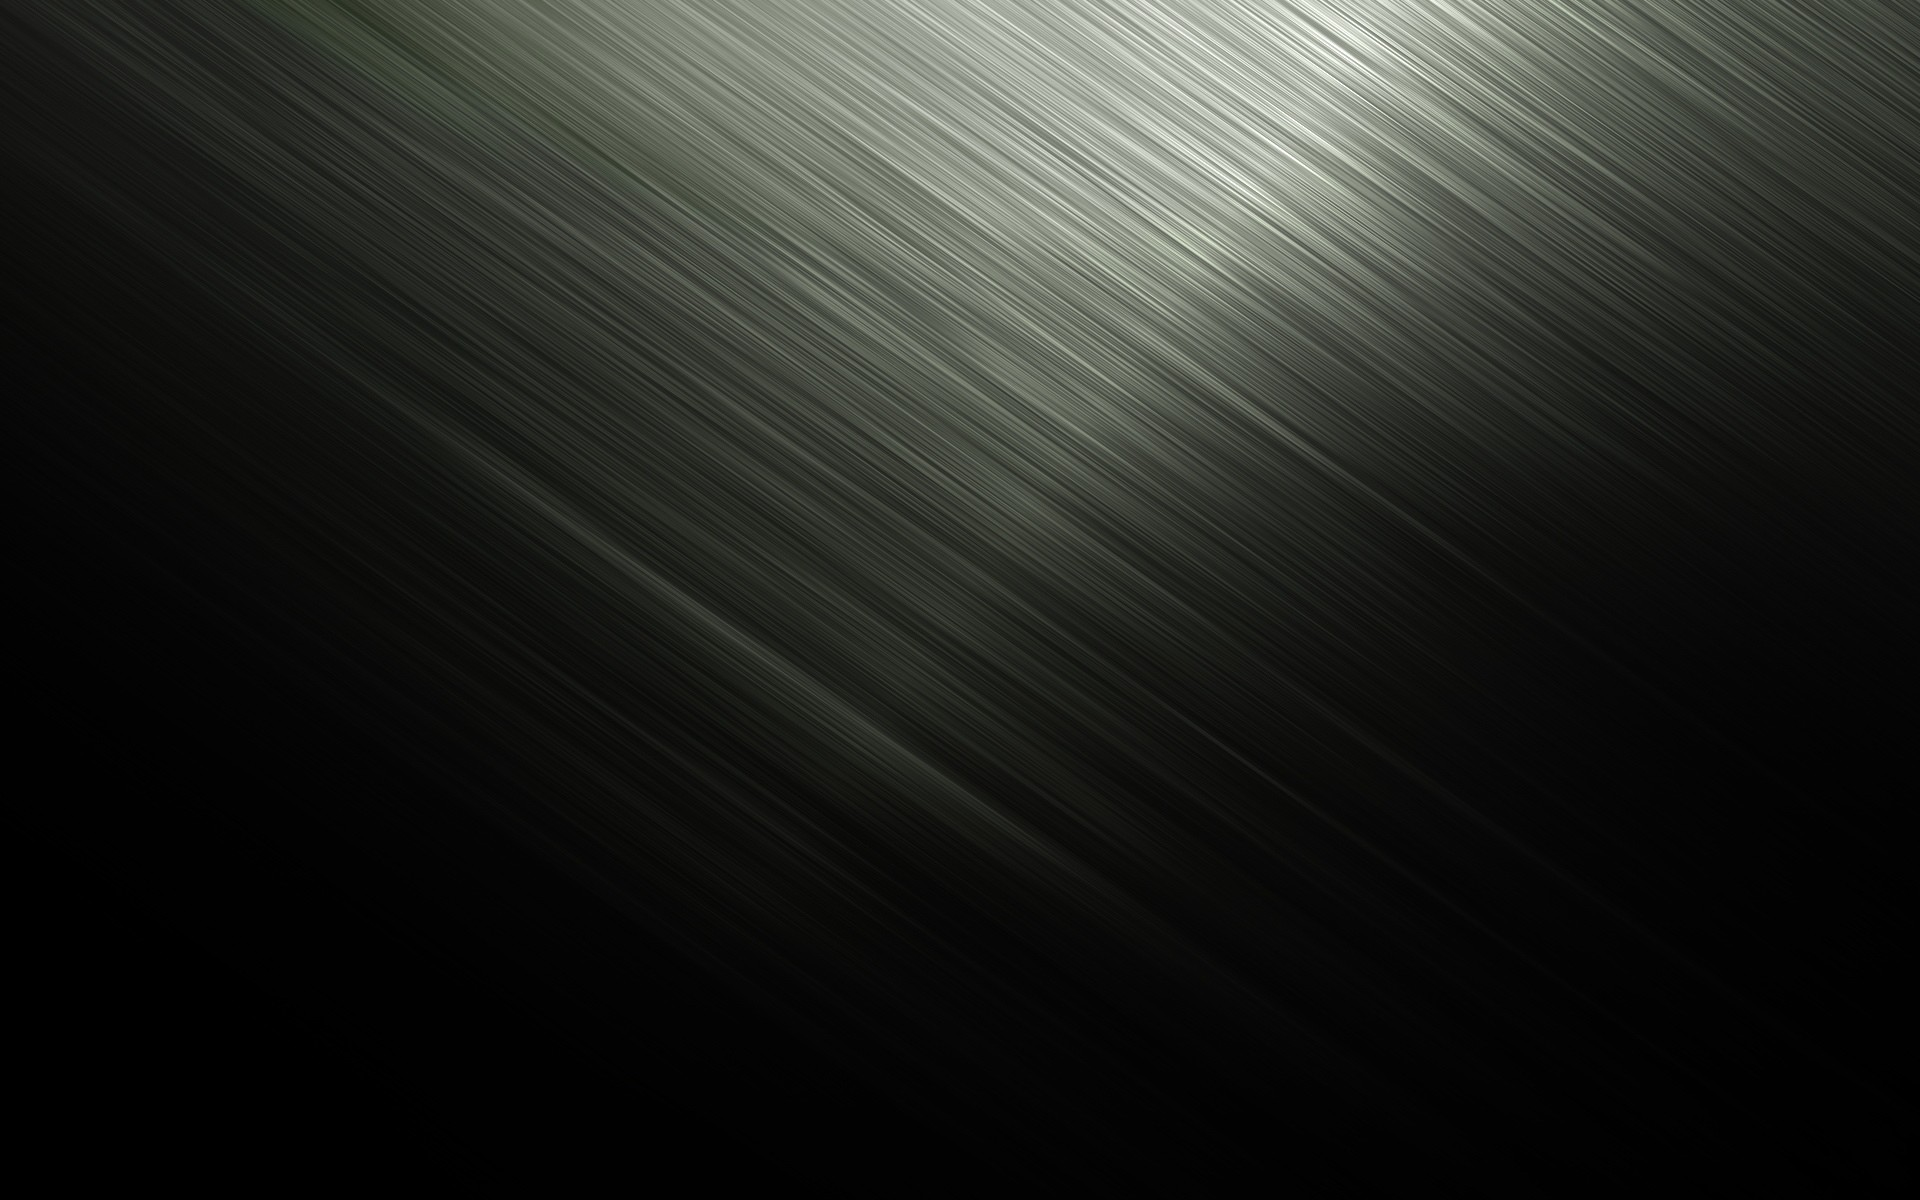 Abstract black wallpaper wallpapersafari - Black abstract background ...